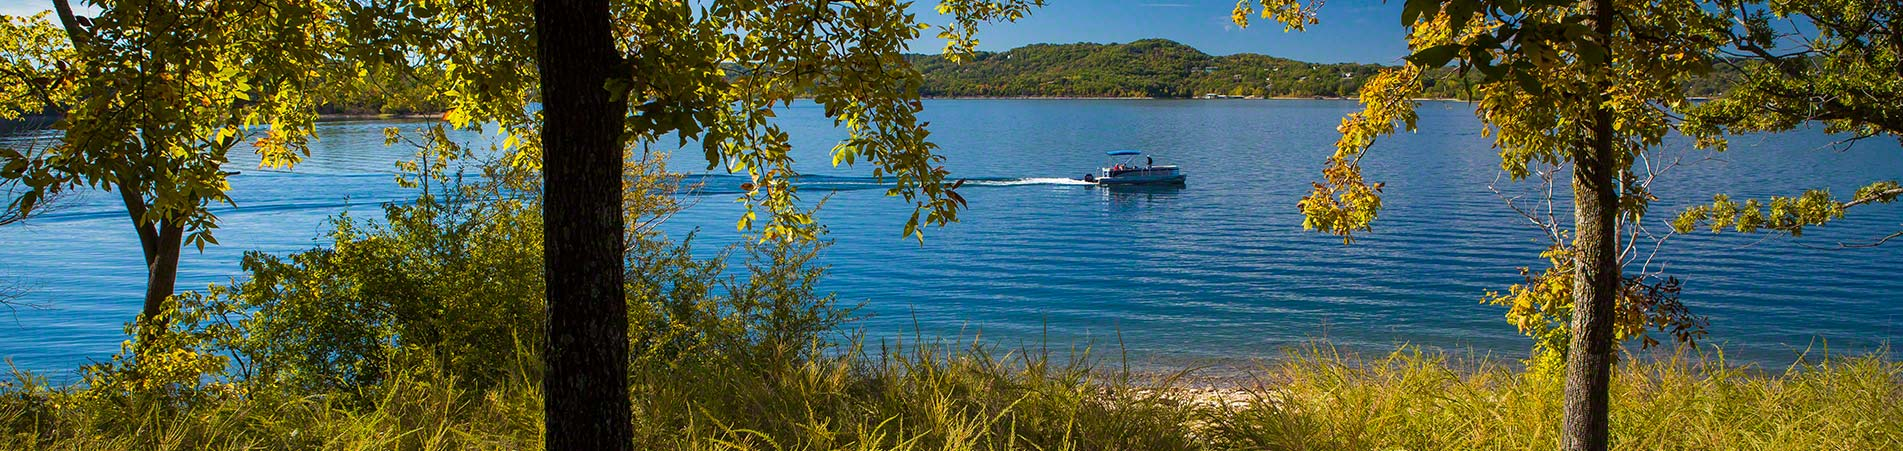 Picture of Table Rock Lake taken by one of our very own realtors in Branson, MO.